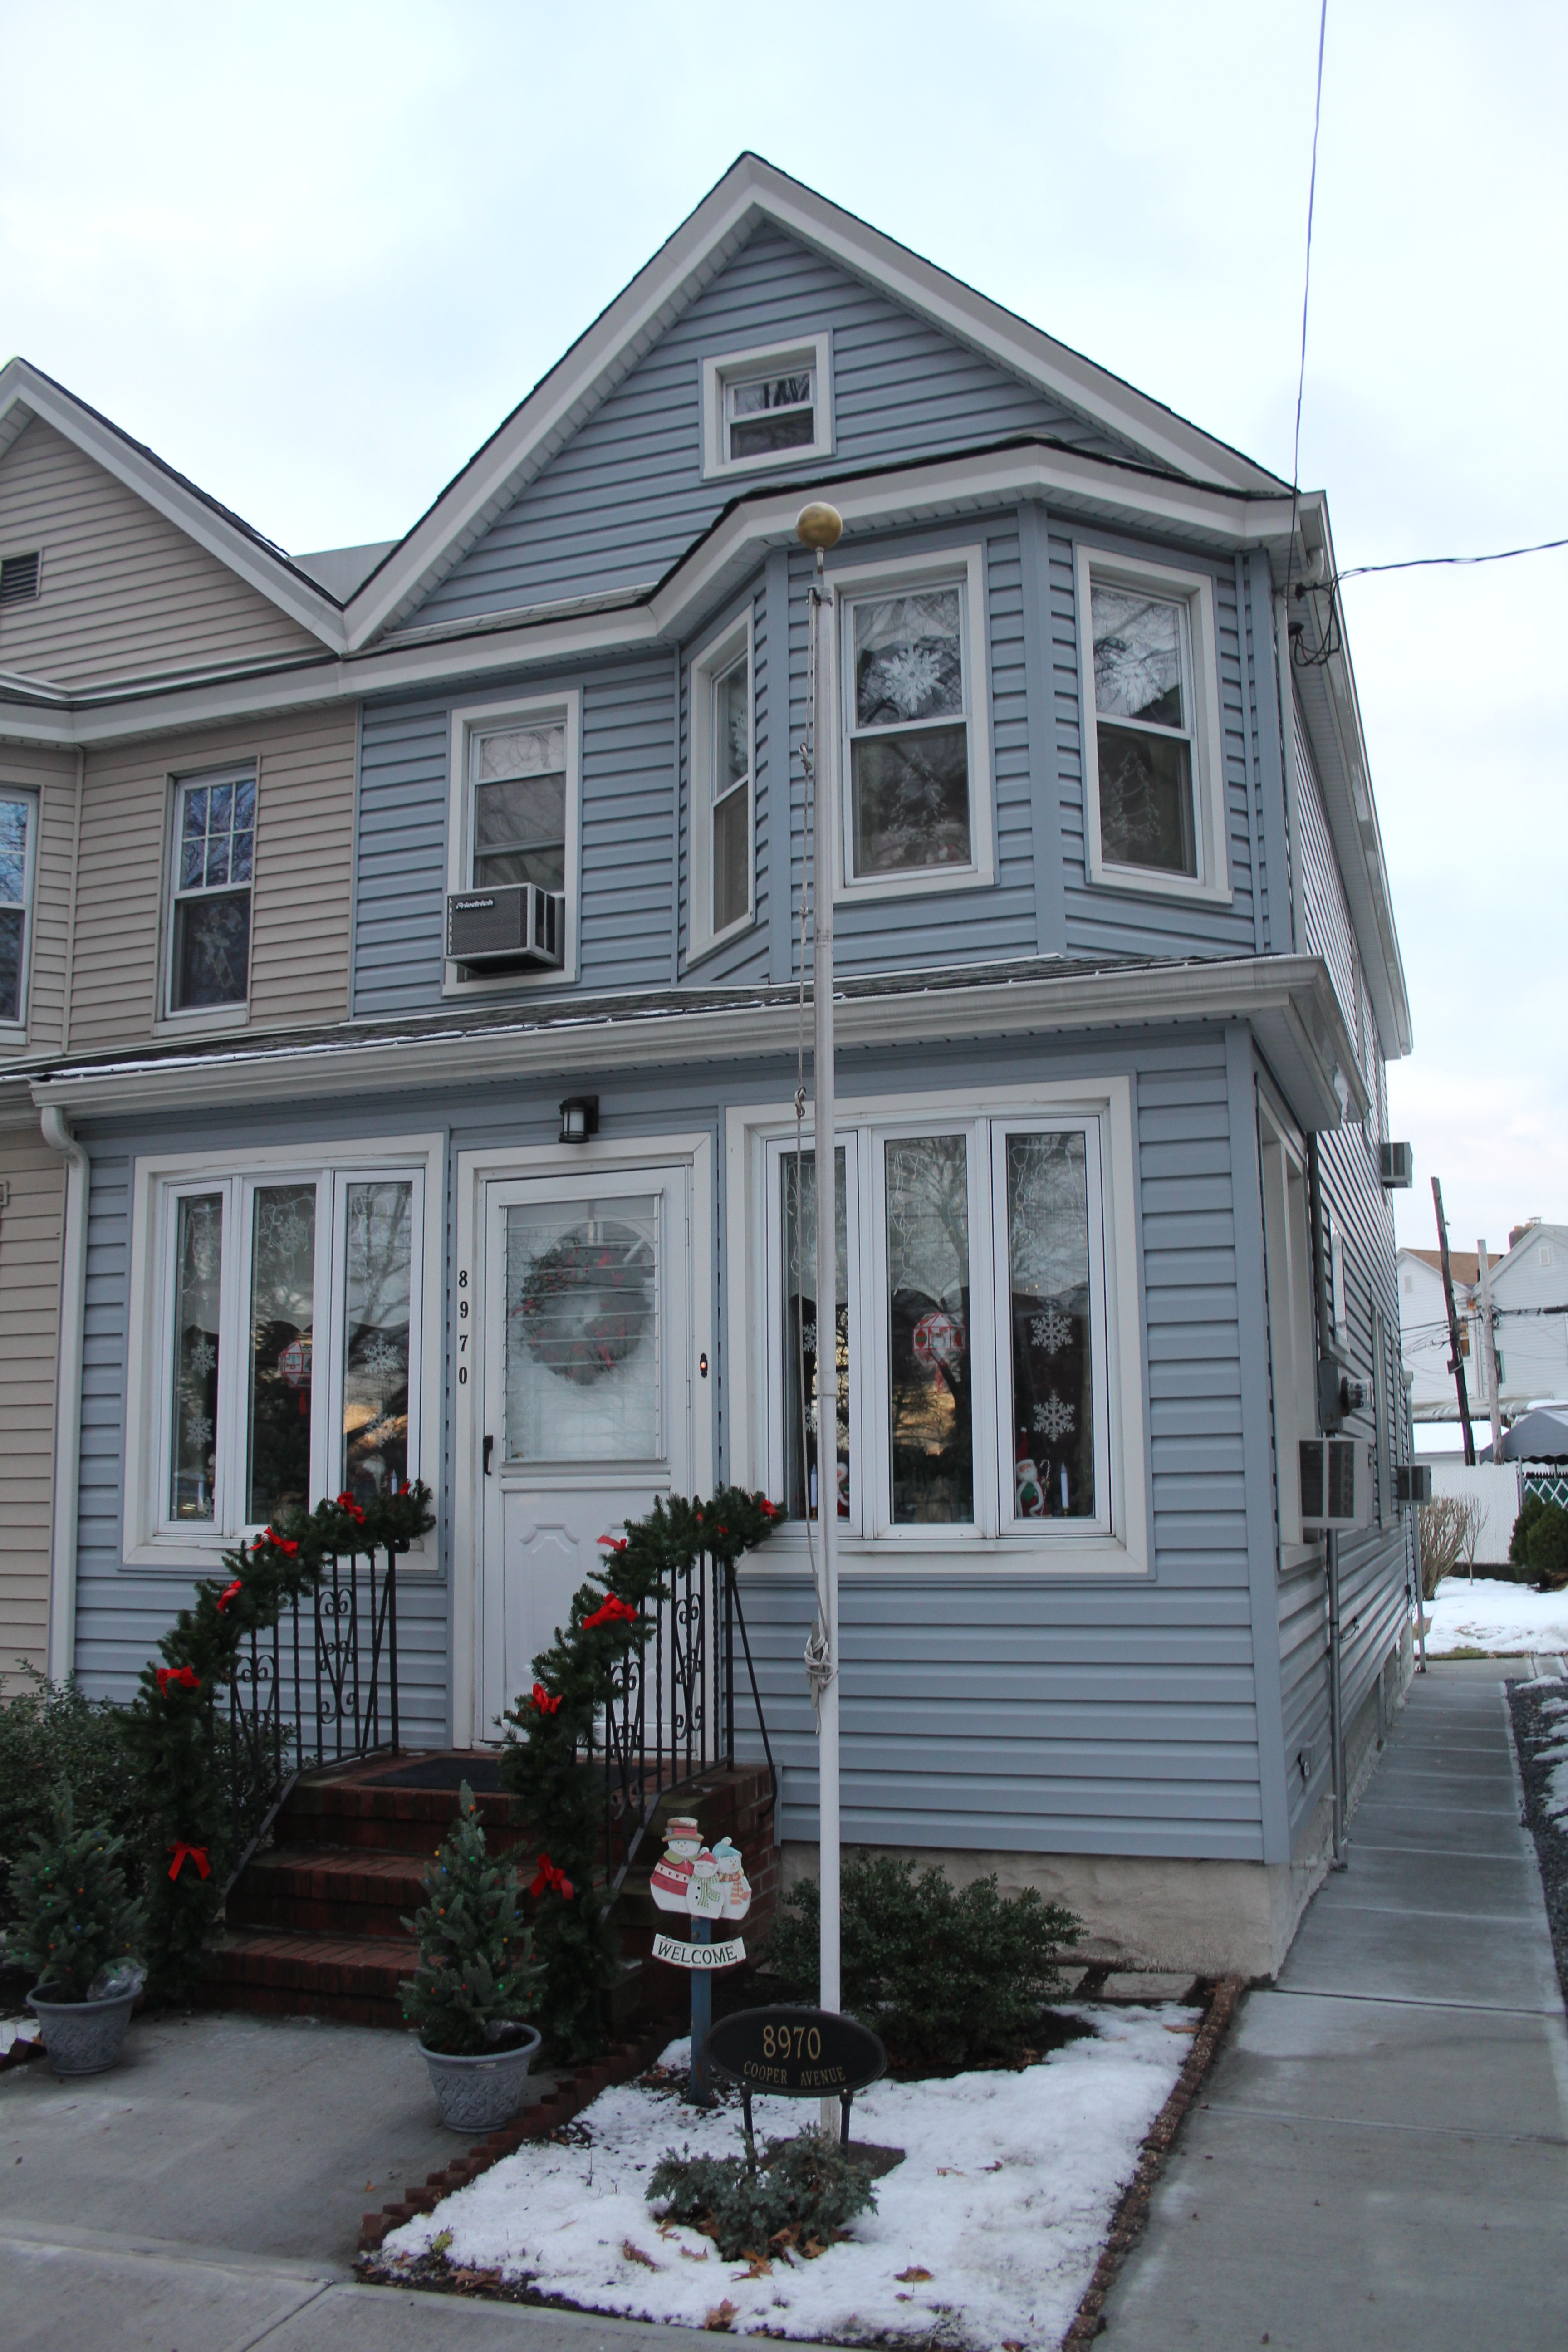 Archie Bunker's house situated at the fictitious address, 704 Hauser Street. | Source: Wikimedia Commons.